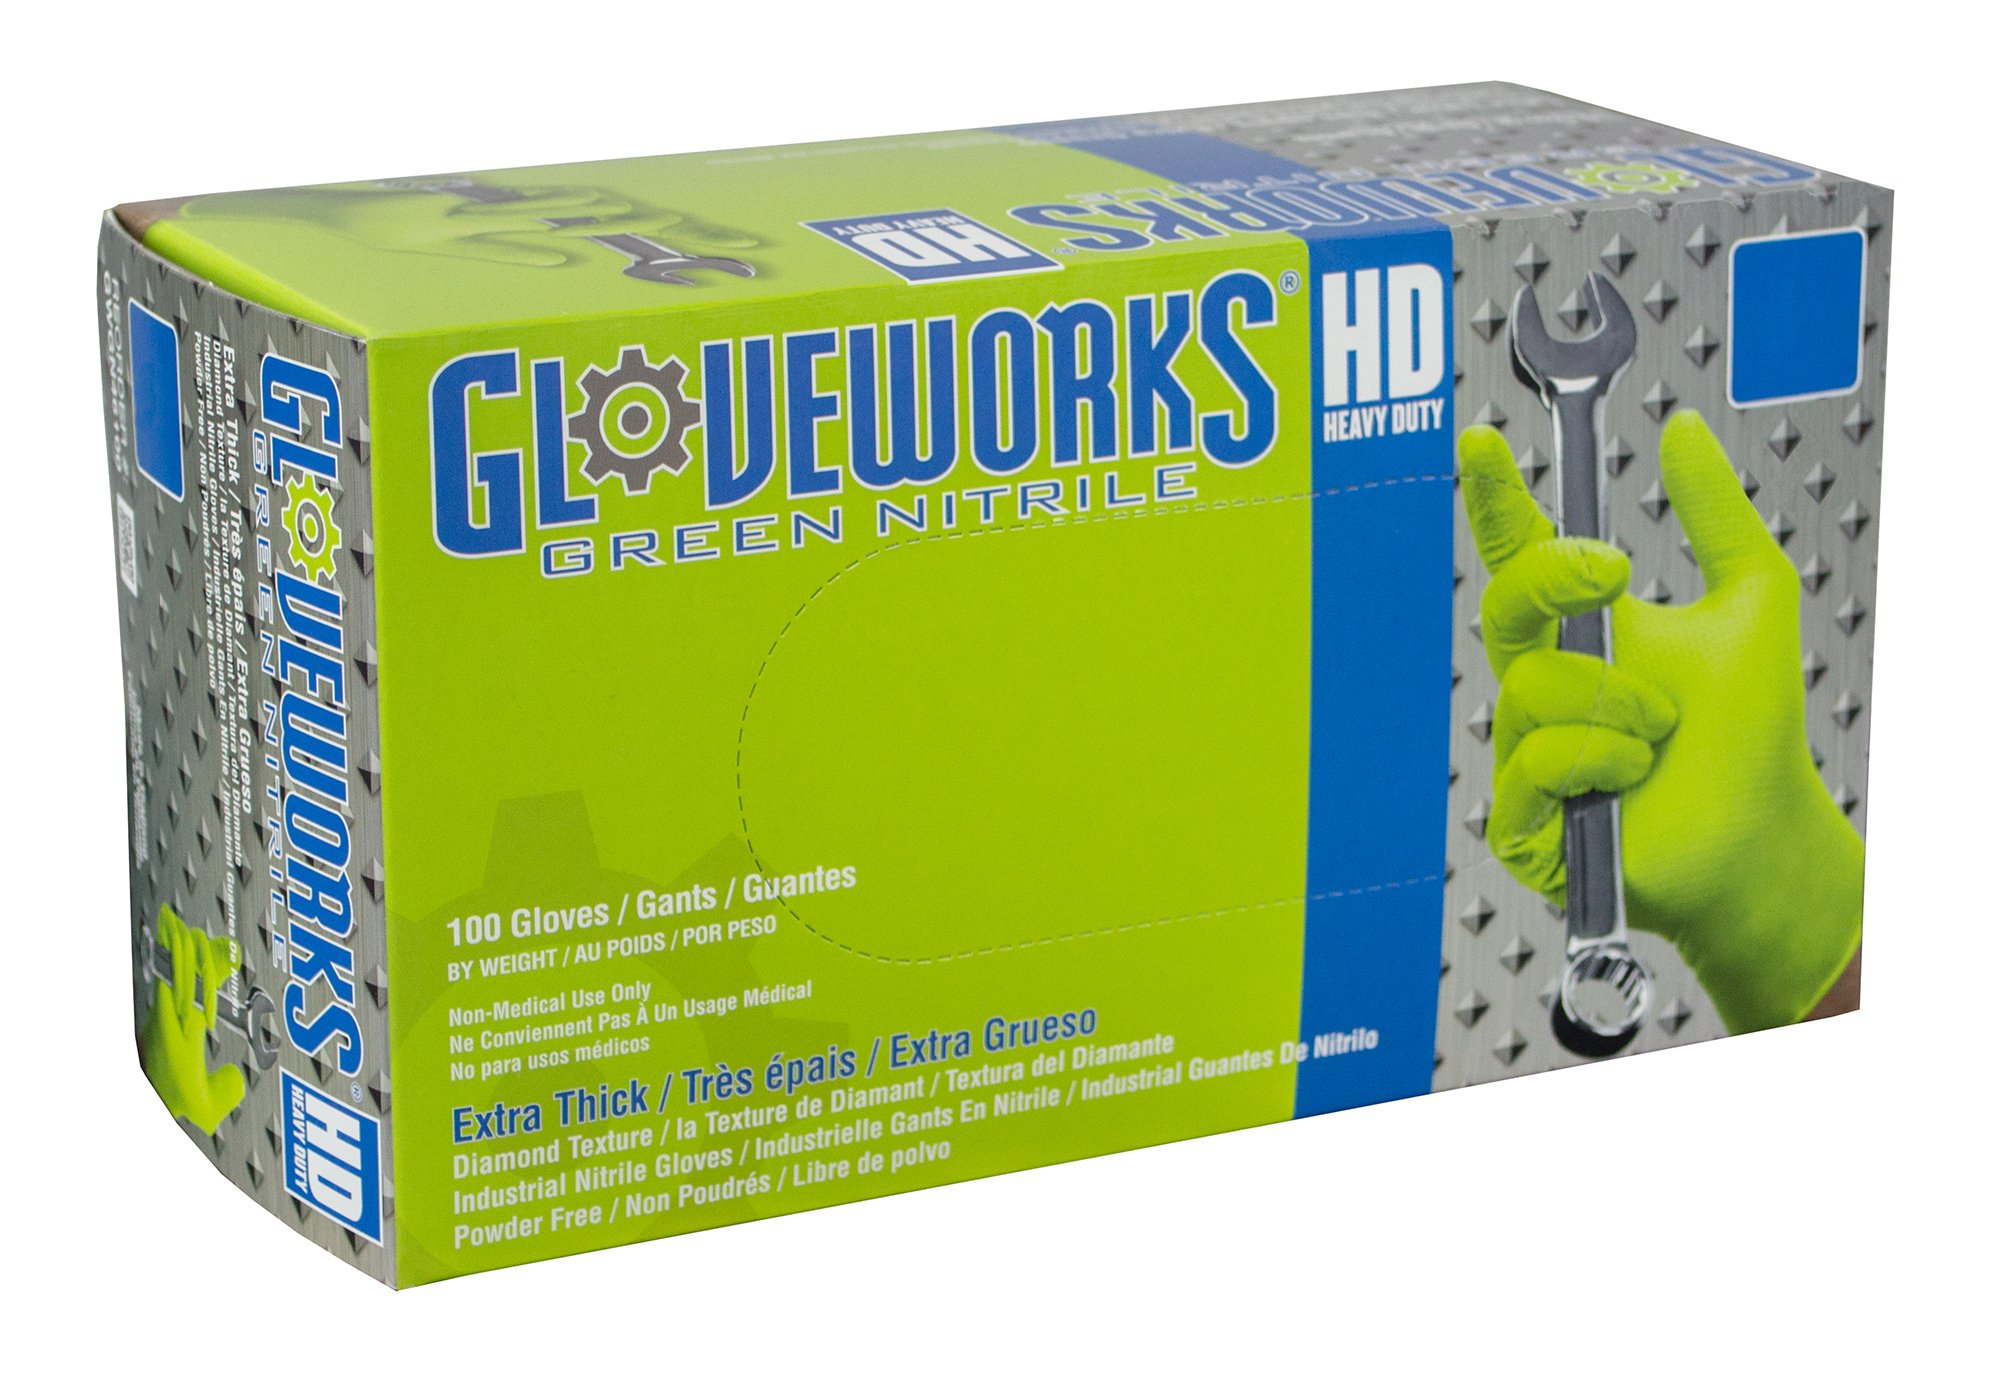 AMMEX - GWGN48100 - Nitrile Gloves - Gloveworks - HD, Disposable, Powder Free, 8 mil, XLarge, Green (Case of 1000)